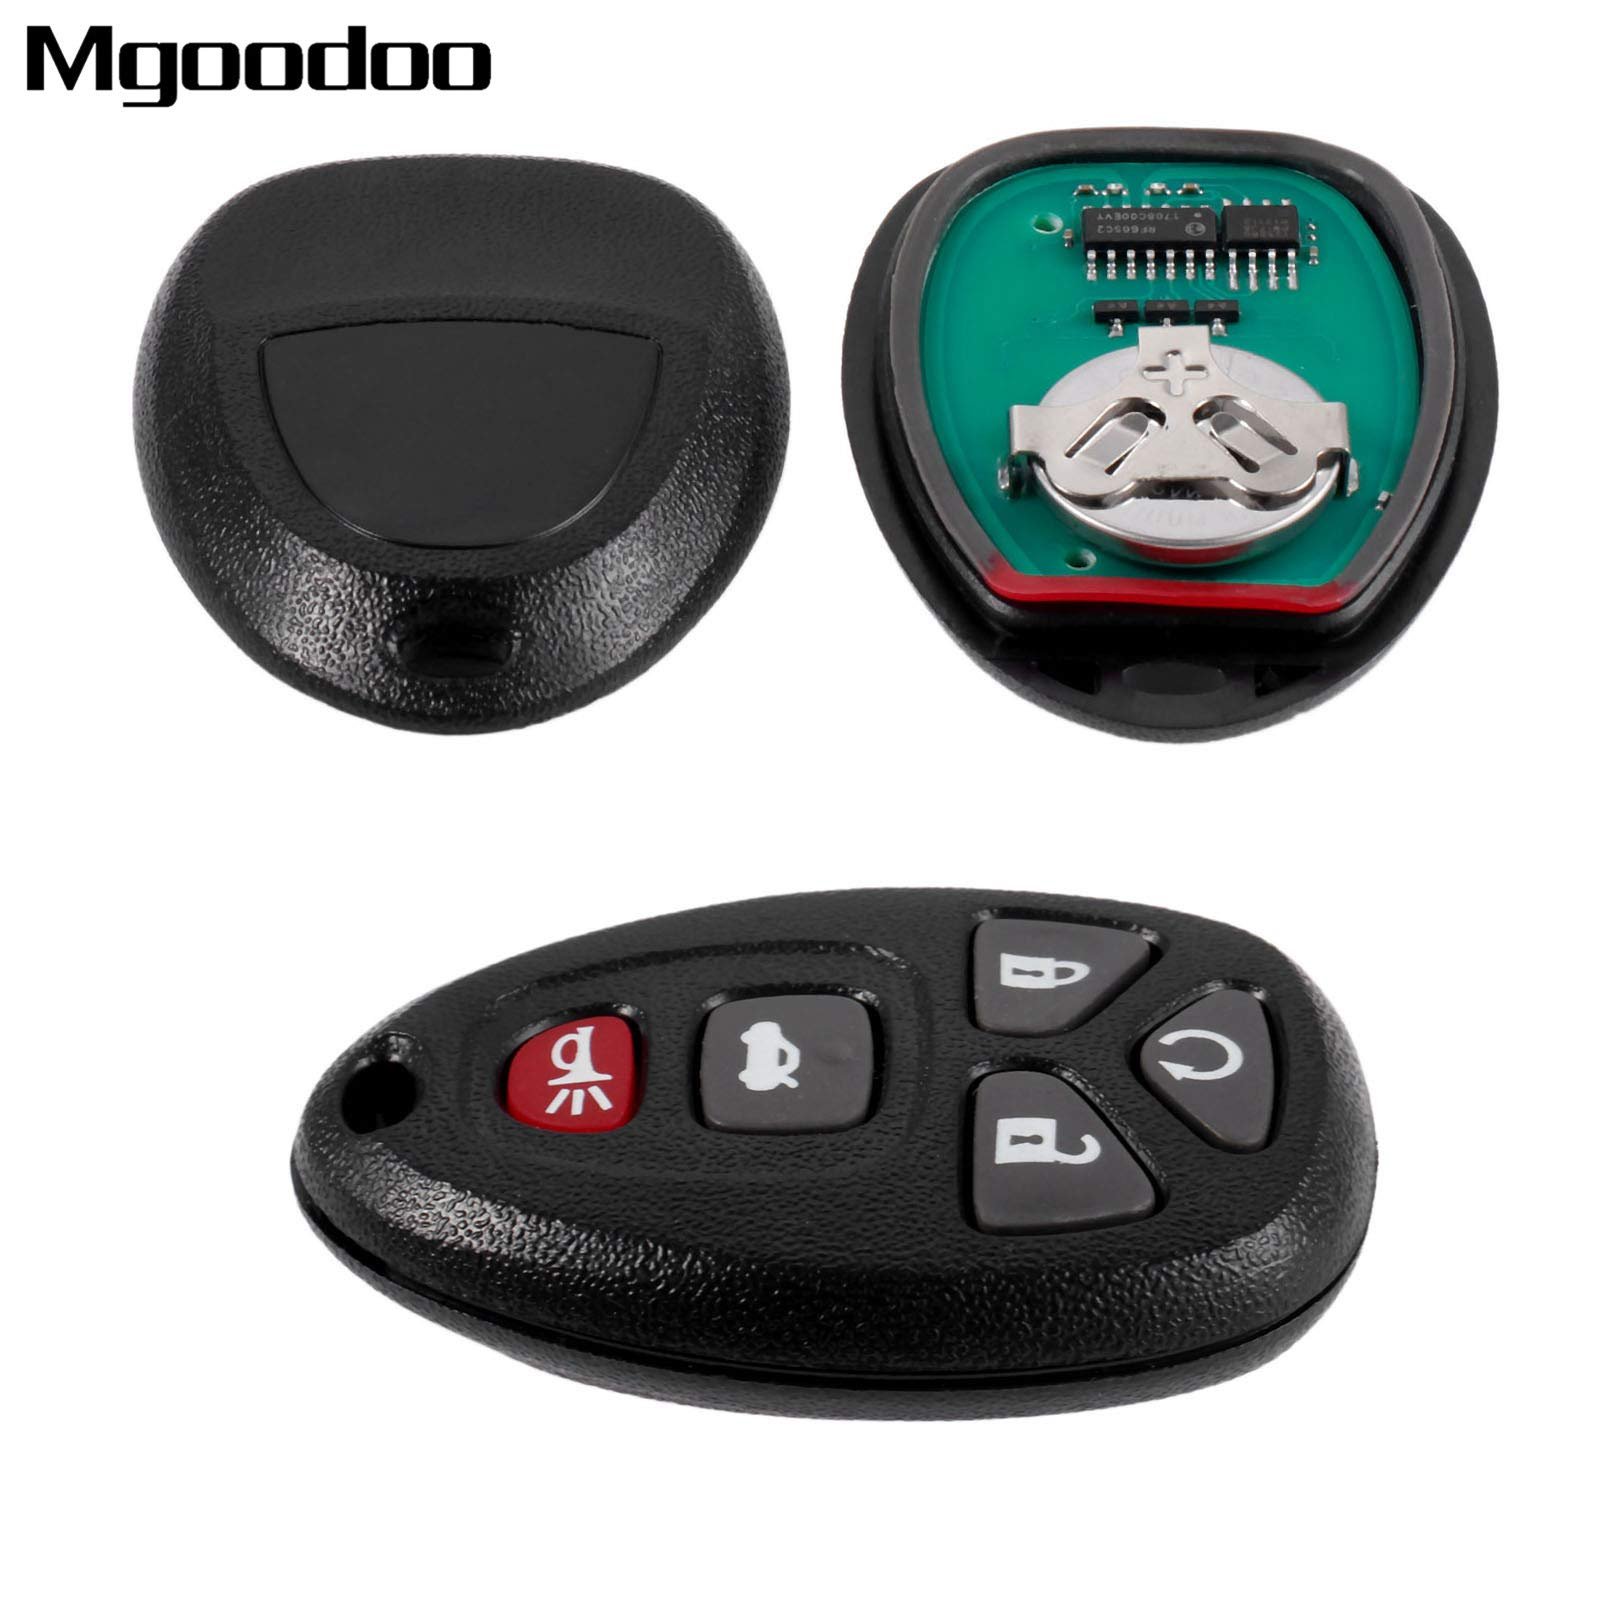 Daphot-Store - 5 Buttons Car Remote Key Case Shell KOBGT04A Keyless Entry Key Fob For Chevrolet Malibu Cobalt Pontiac G5 Buick Allure LaCrosse